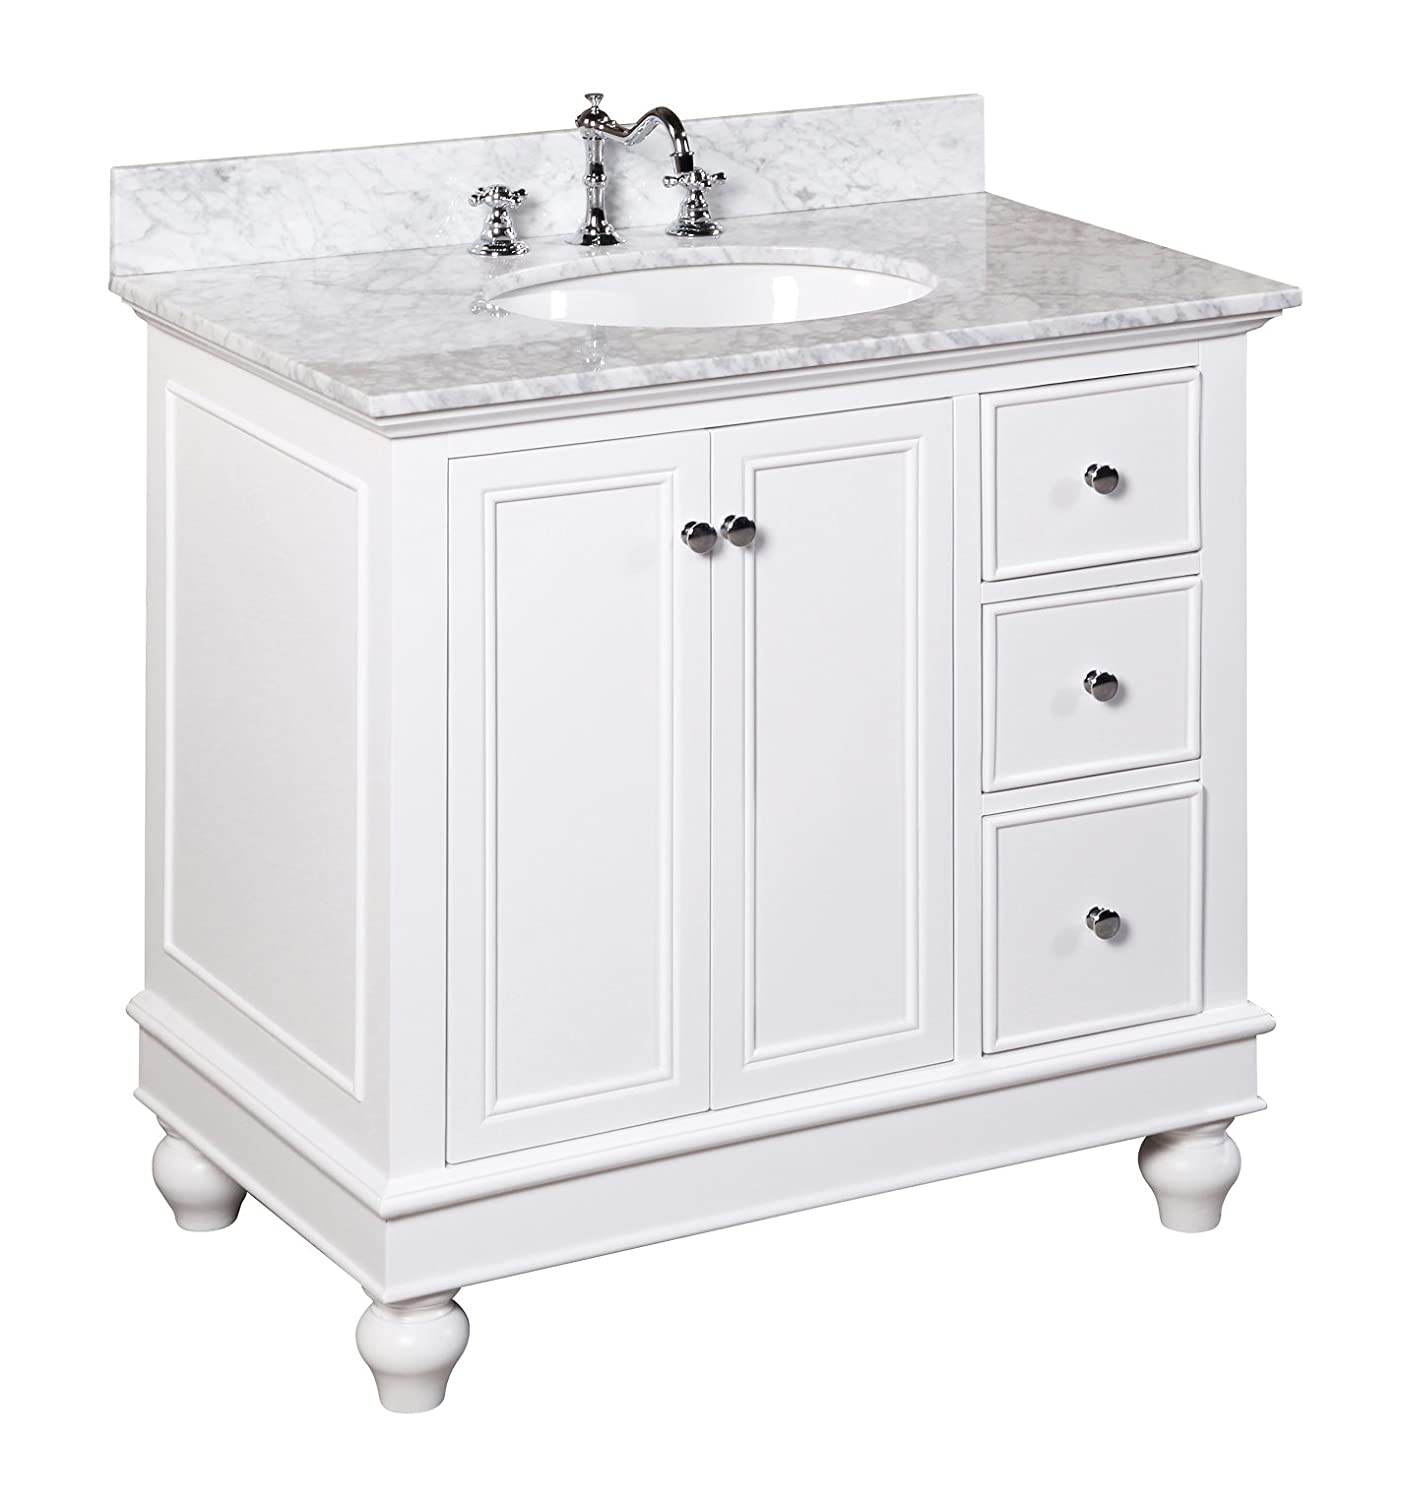 vanity set inch designs full size bathroom jonina single home of